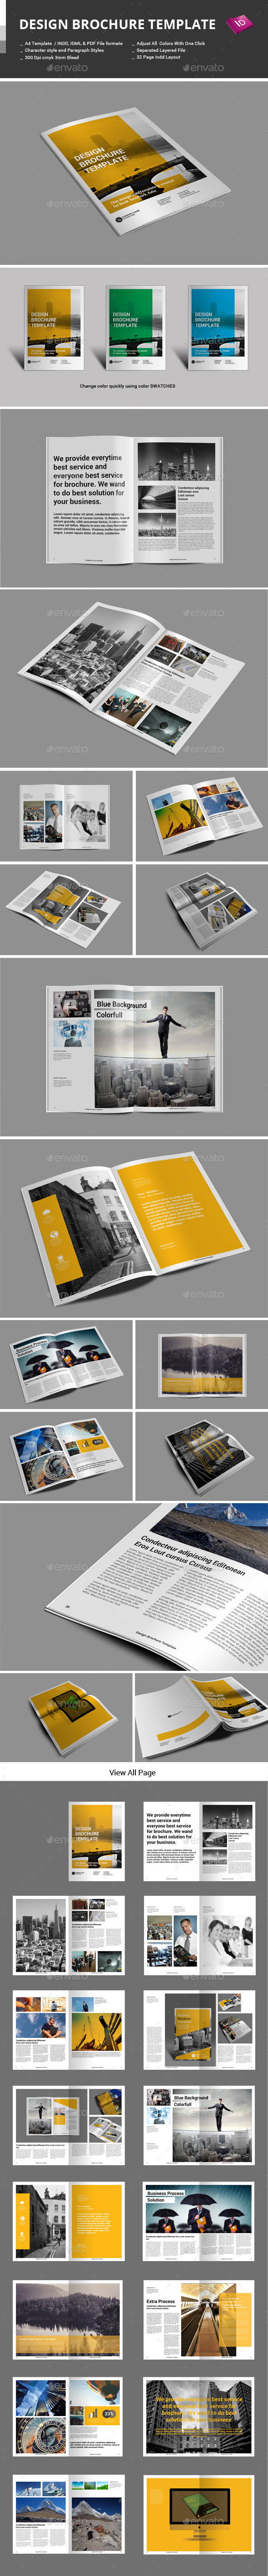 GraphicRiver Design Brochure Template 9739419